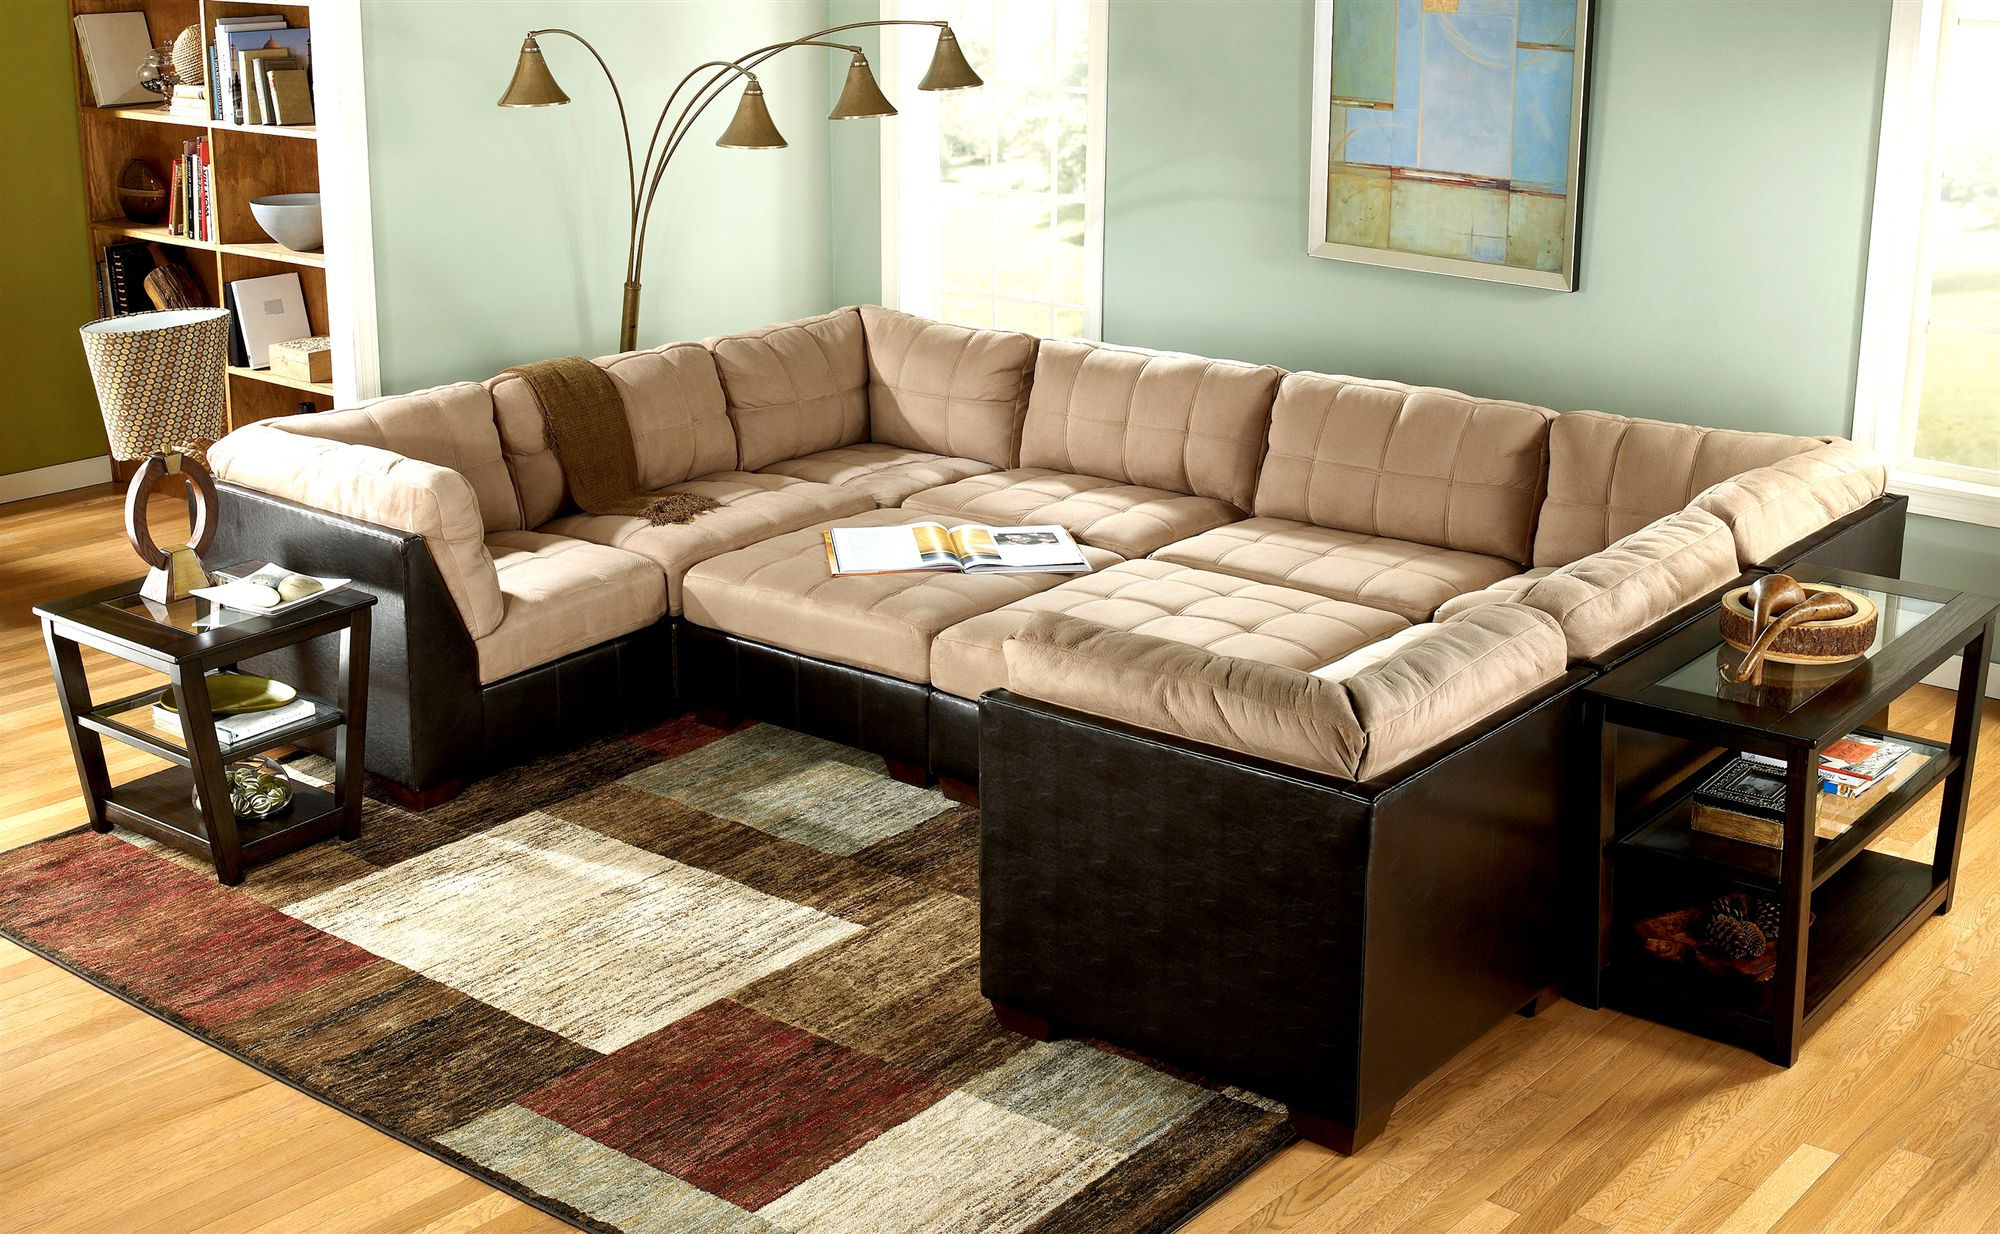 Living room ideas with sectionals sofa for small living for Living room sofa ideas